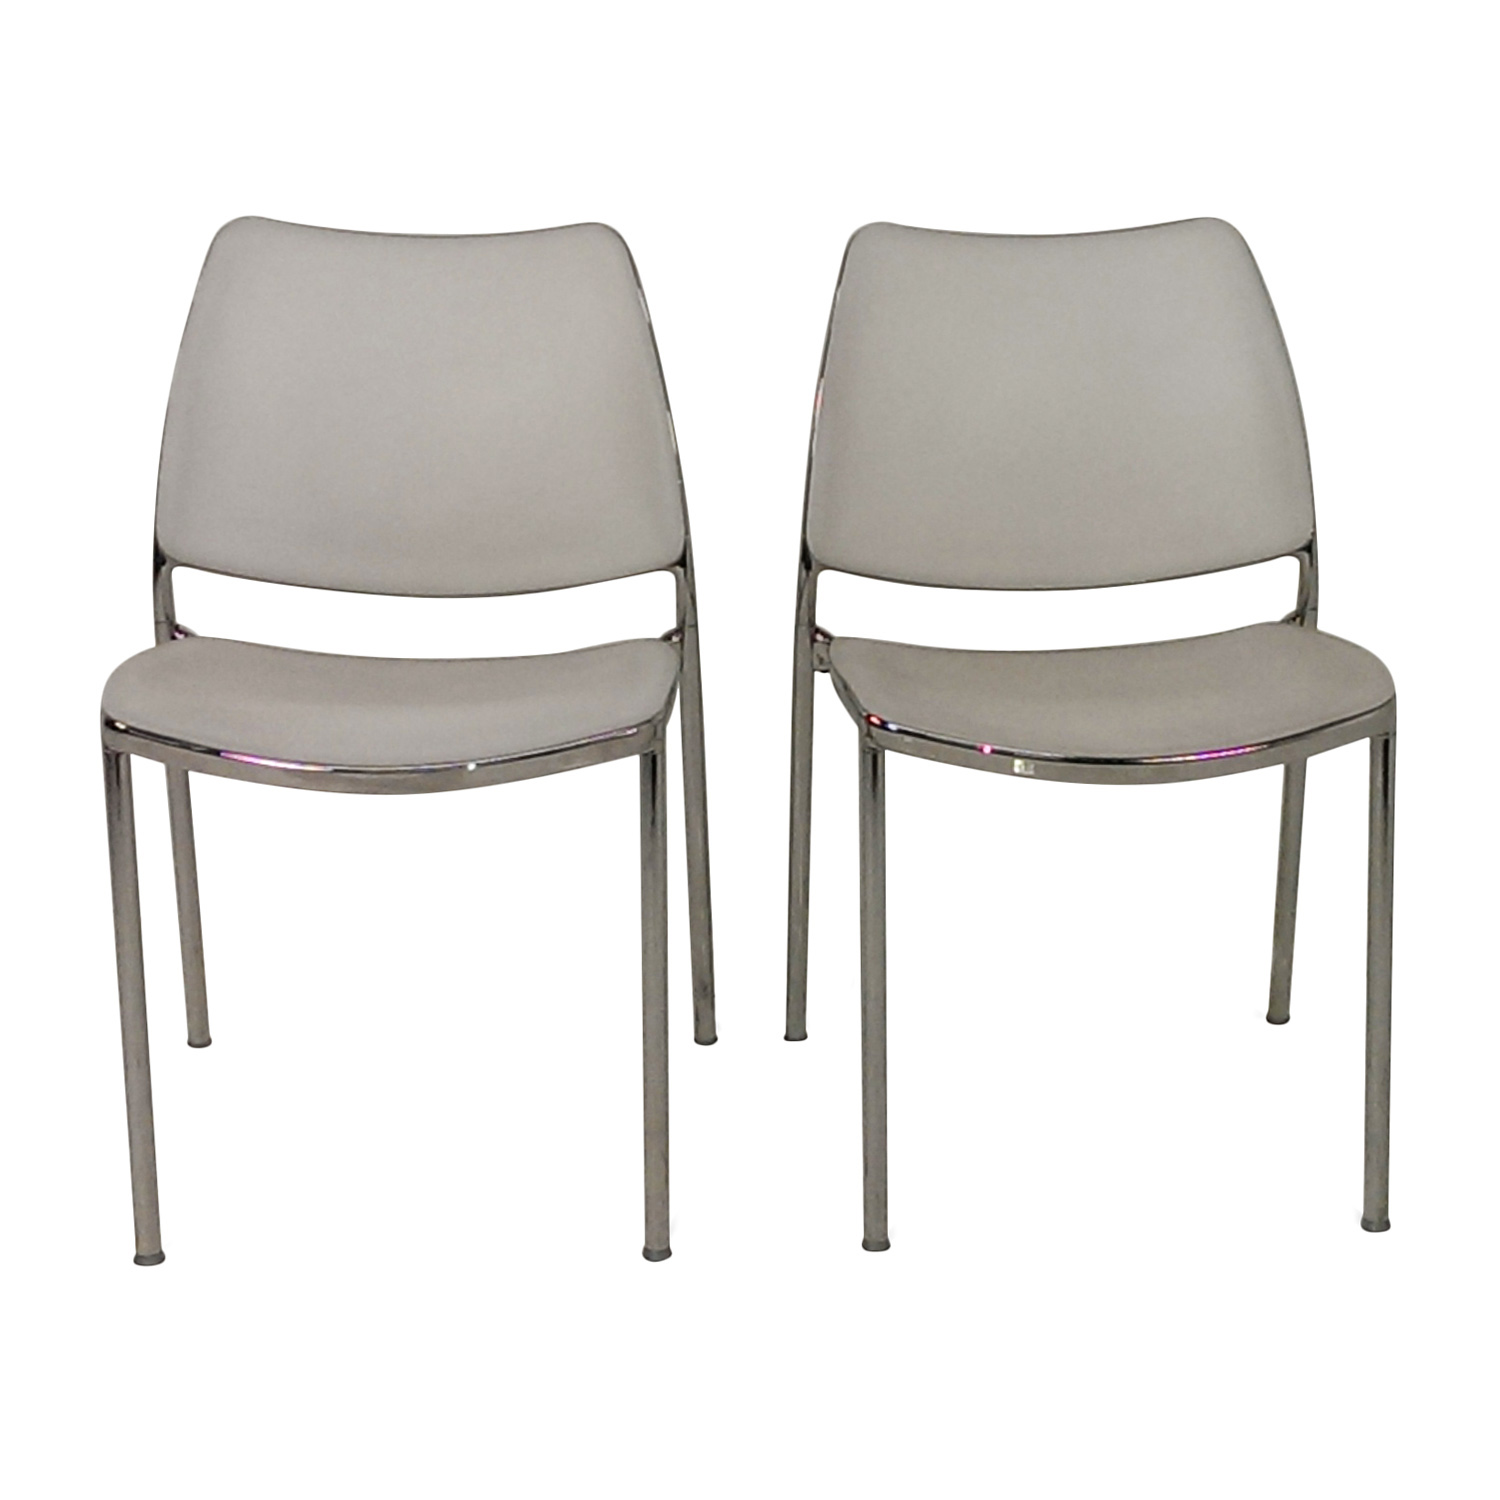 90 off pair of white kitchen chairs chairs for White kitchen dining chairs